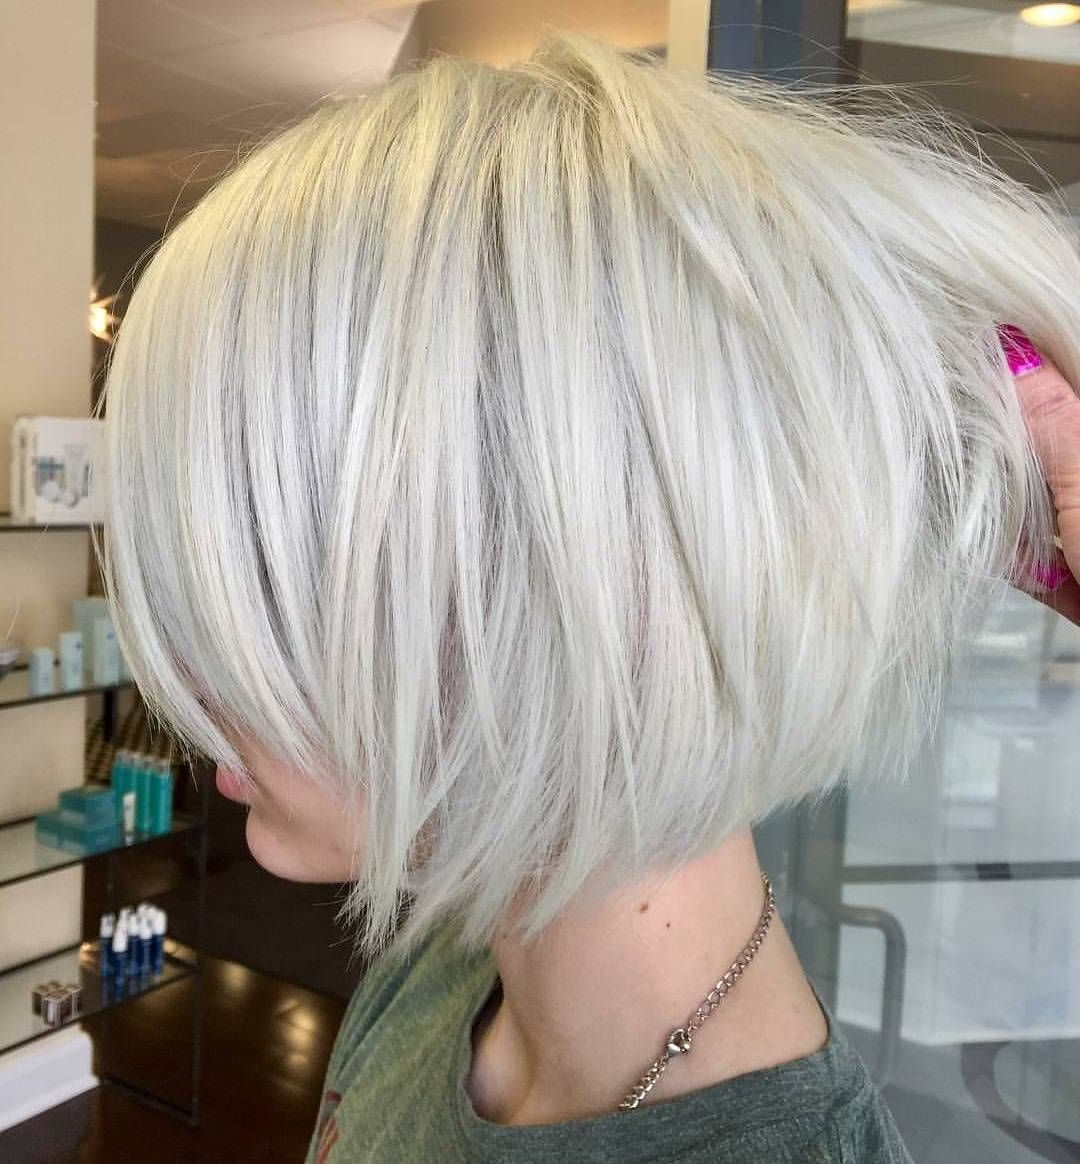 10 Layered Bob Hairstyles – Look Fab In New Blonde Shades | Hair Inside White Blonde Curly Layered Bob Hairstyles (View 2 of 25)